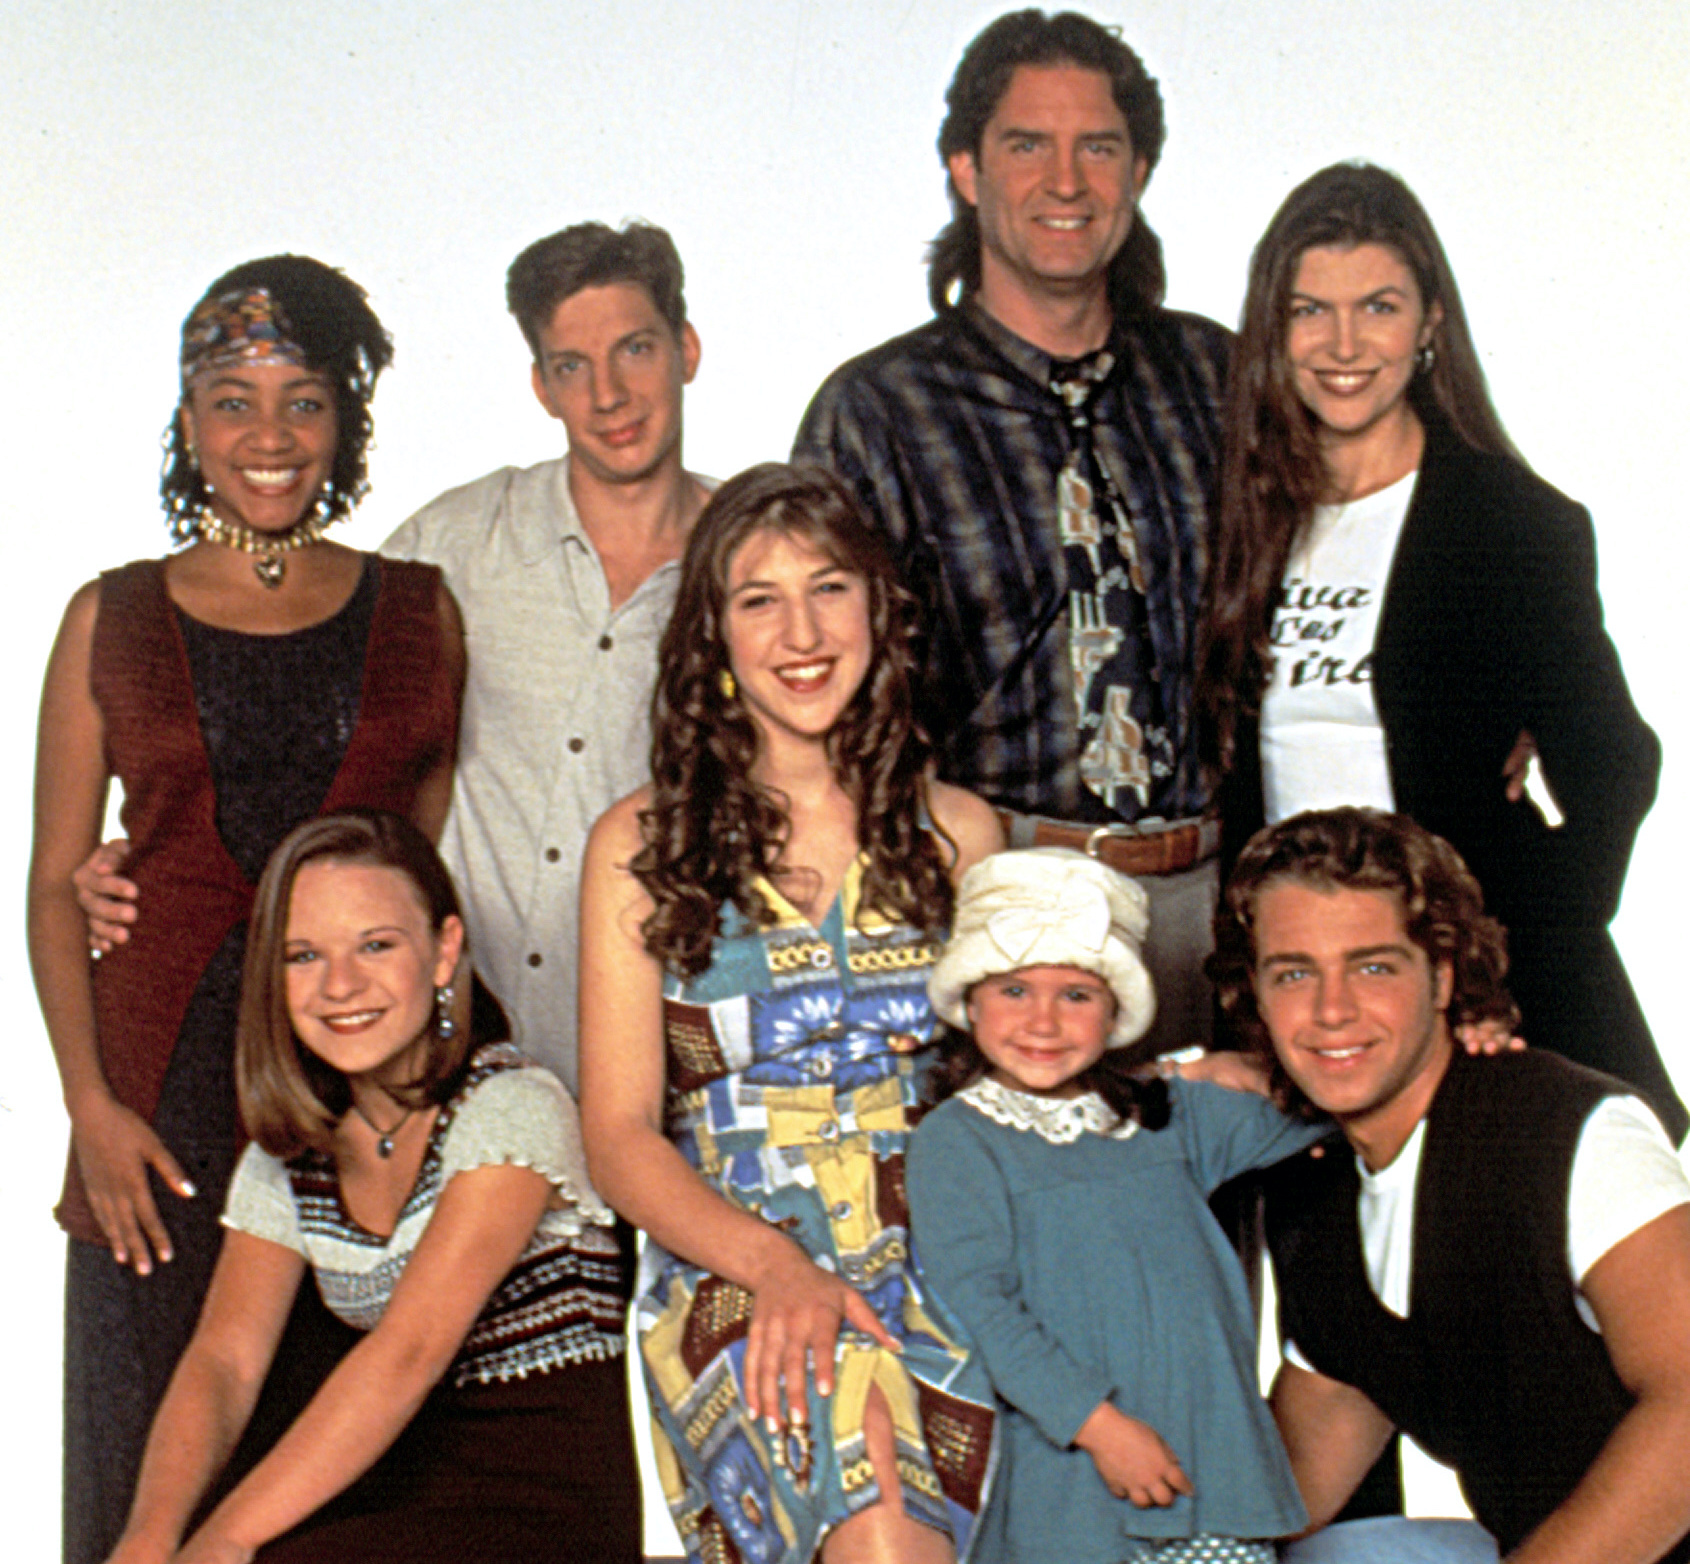 BLOSSOM, (back l to r): Samaria Graham, Michael Stoyanov, Ted Wass, Finola Hughes, (front l to r): Jenna Von Oy, Mayim Bialik, Courtney Chase, Joey Lawrence, Season 5, 1991-95, (c)Touchstone Television/courtesy Everett Collection